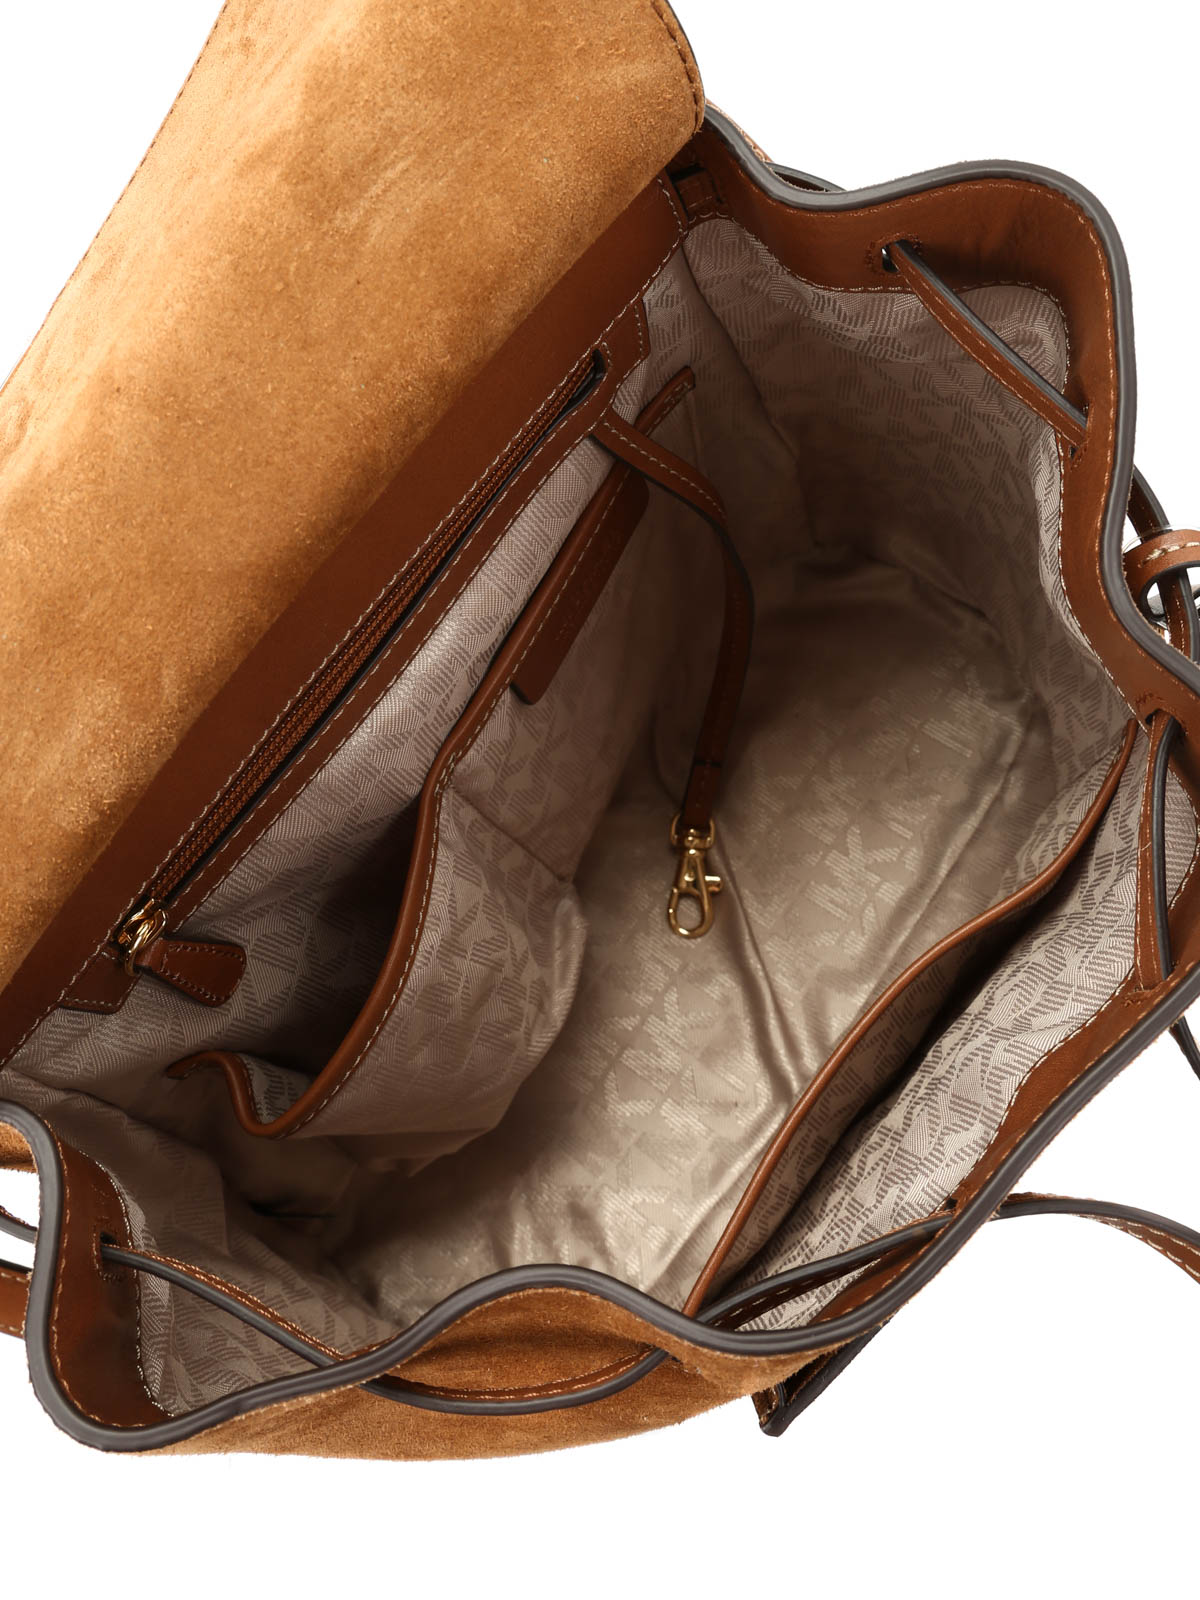 8f69219d3ed7 ... discount code for ikrix michael kors romy suede and leather backpack  9b253 7bbb8